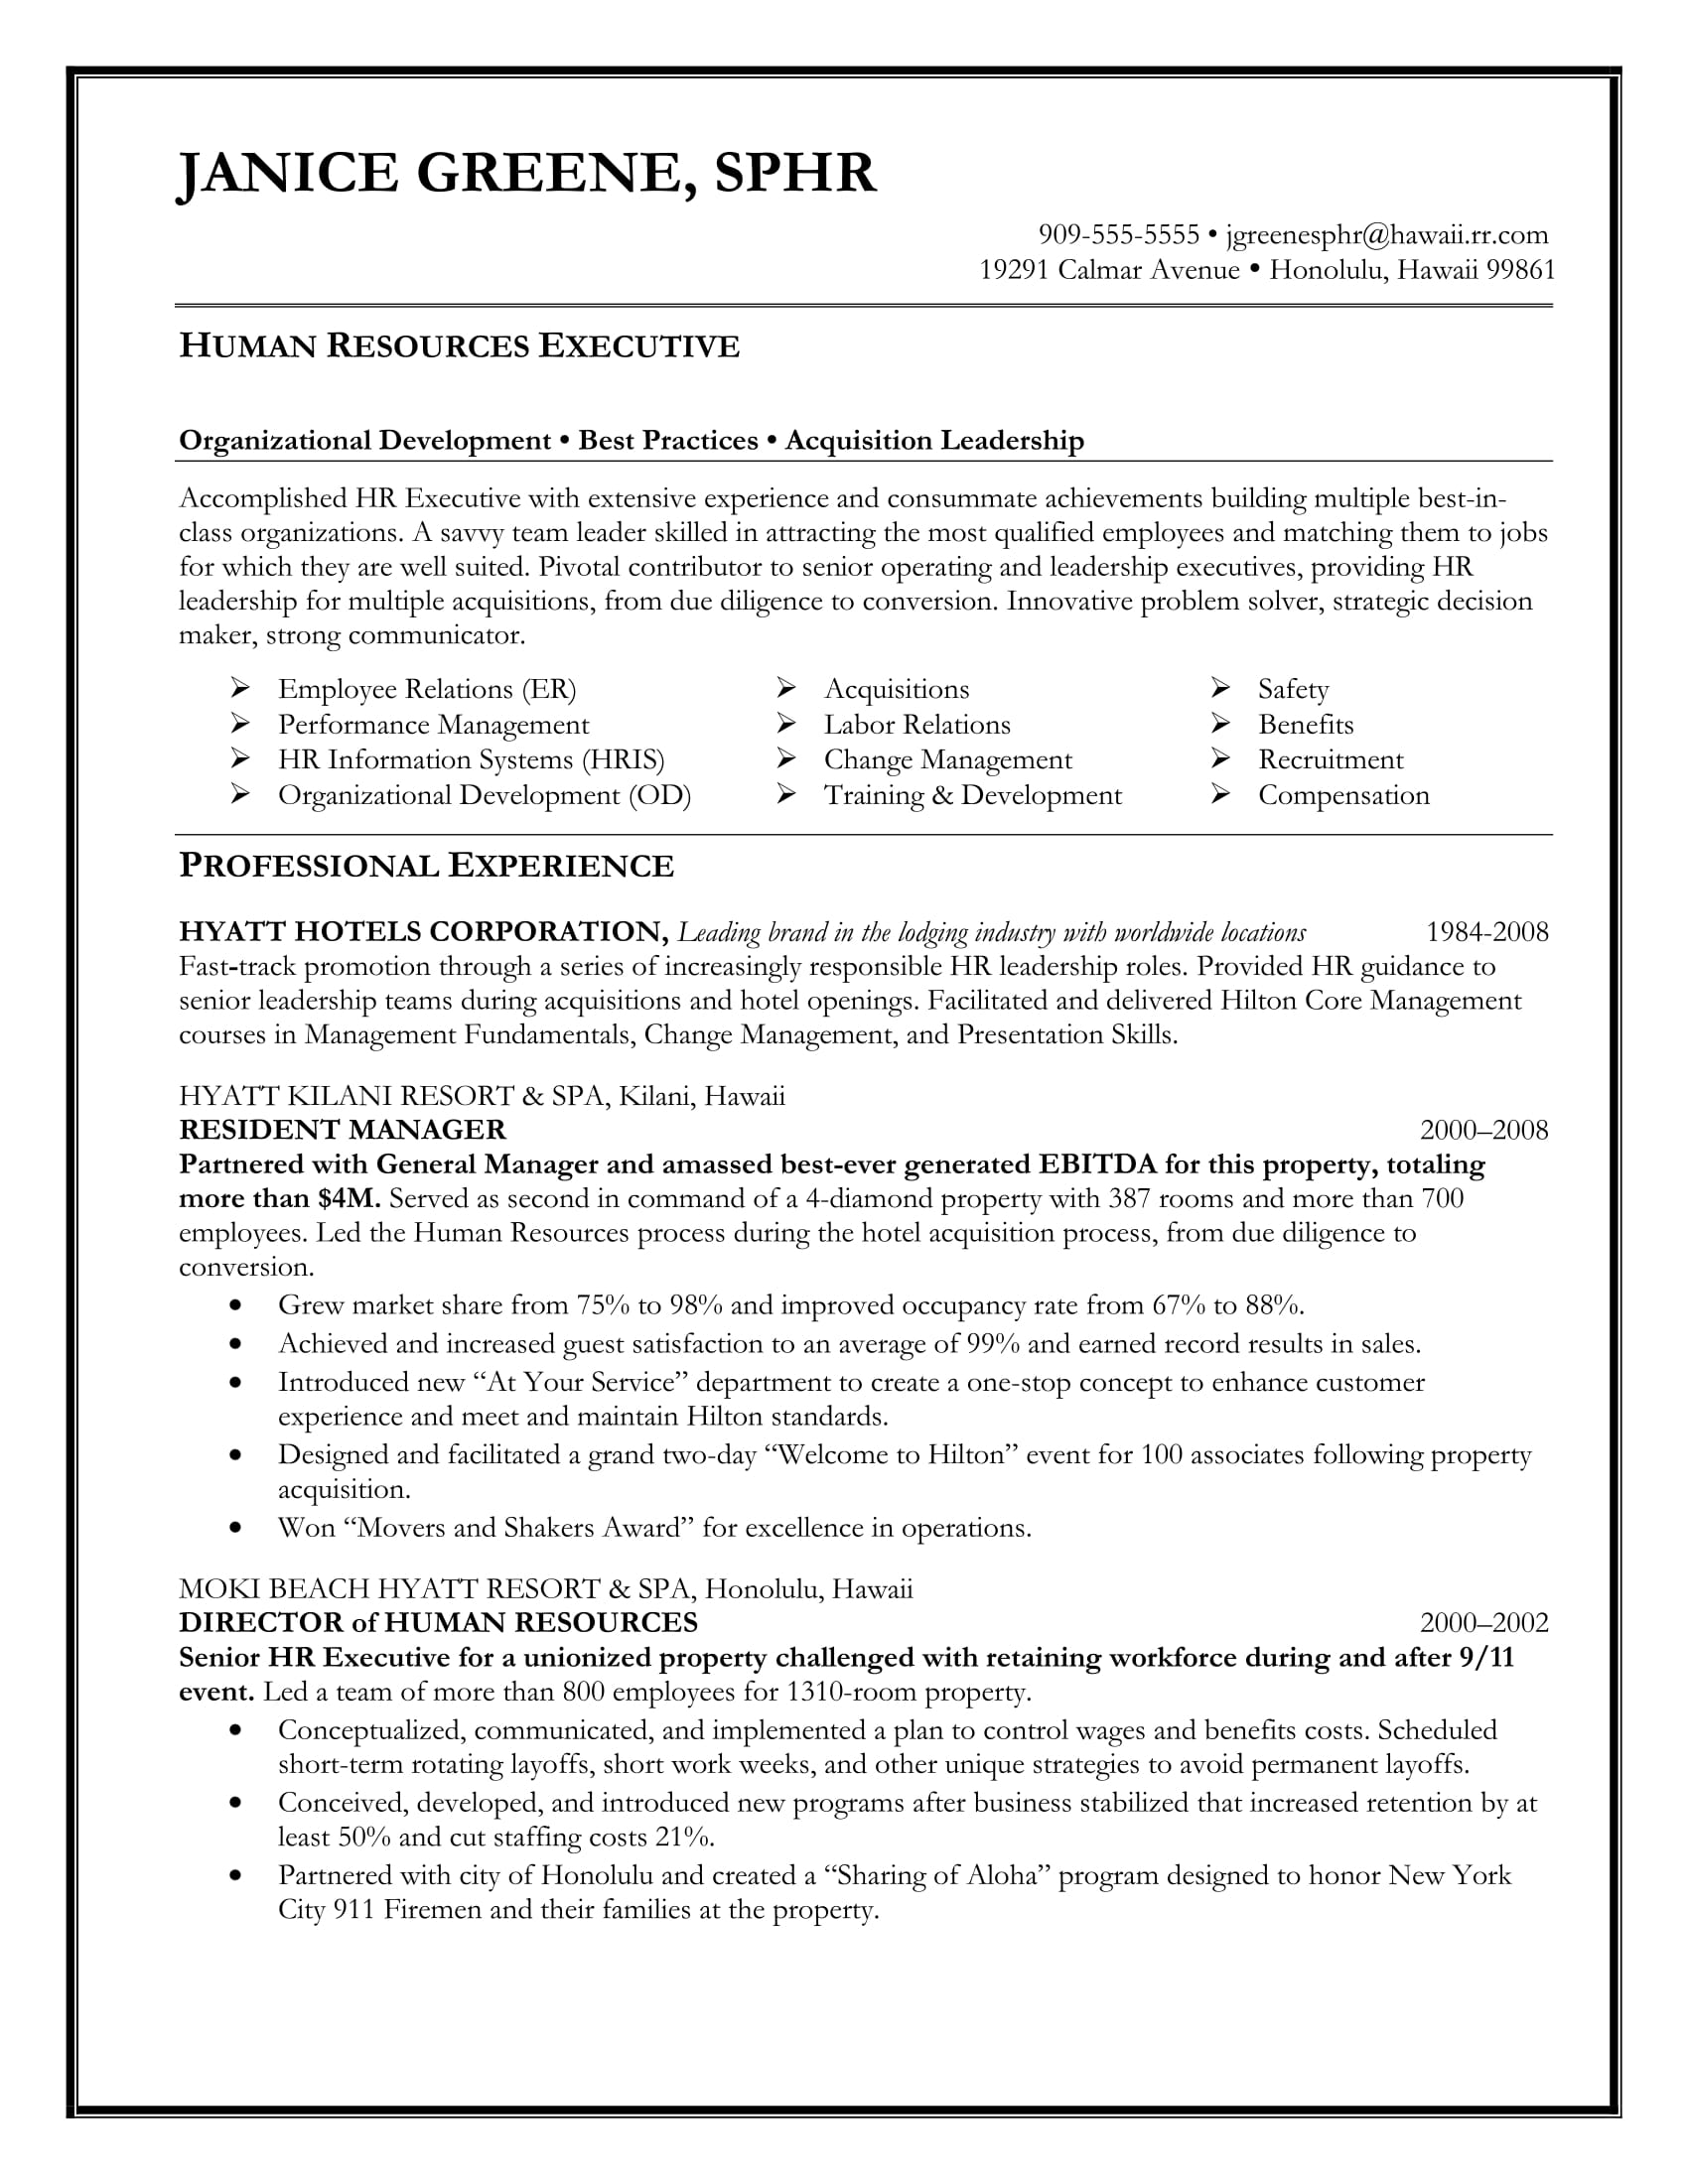 best sample executive resume templates wisestep template free child care worker for cooks Resume Executive Resume Template 2019 Free